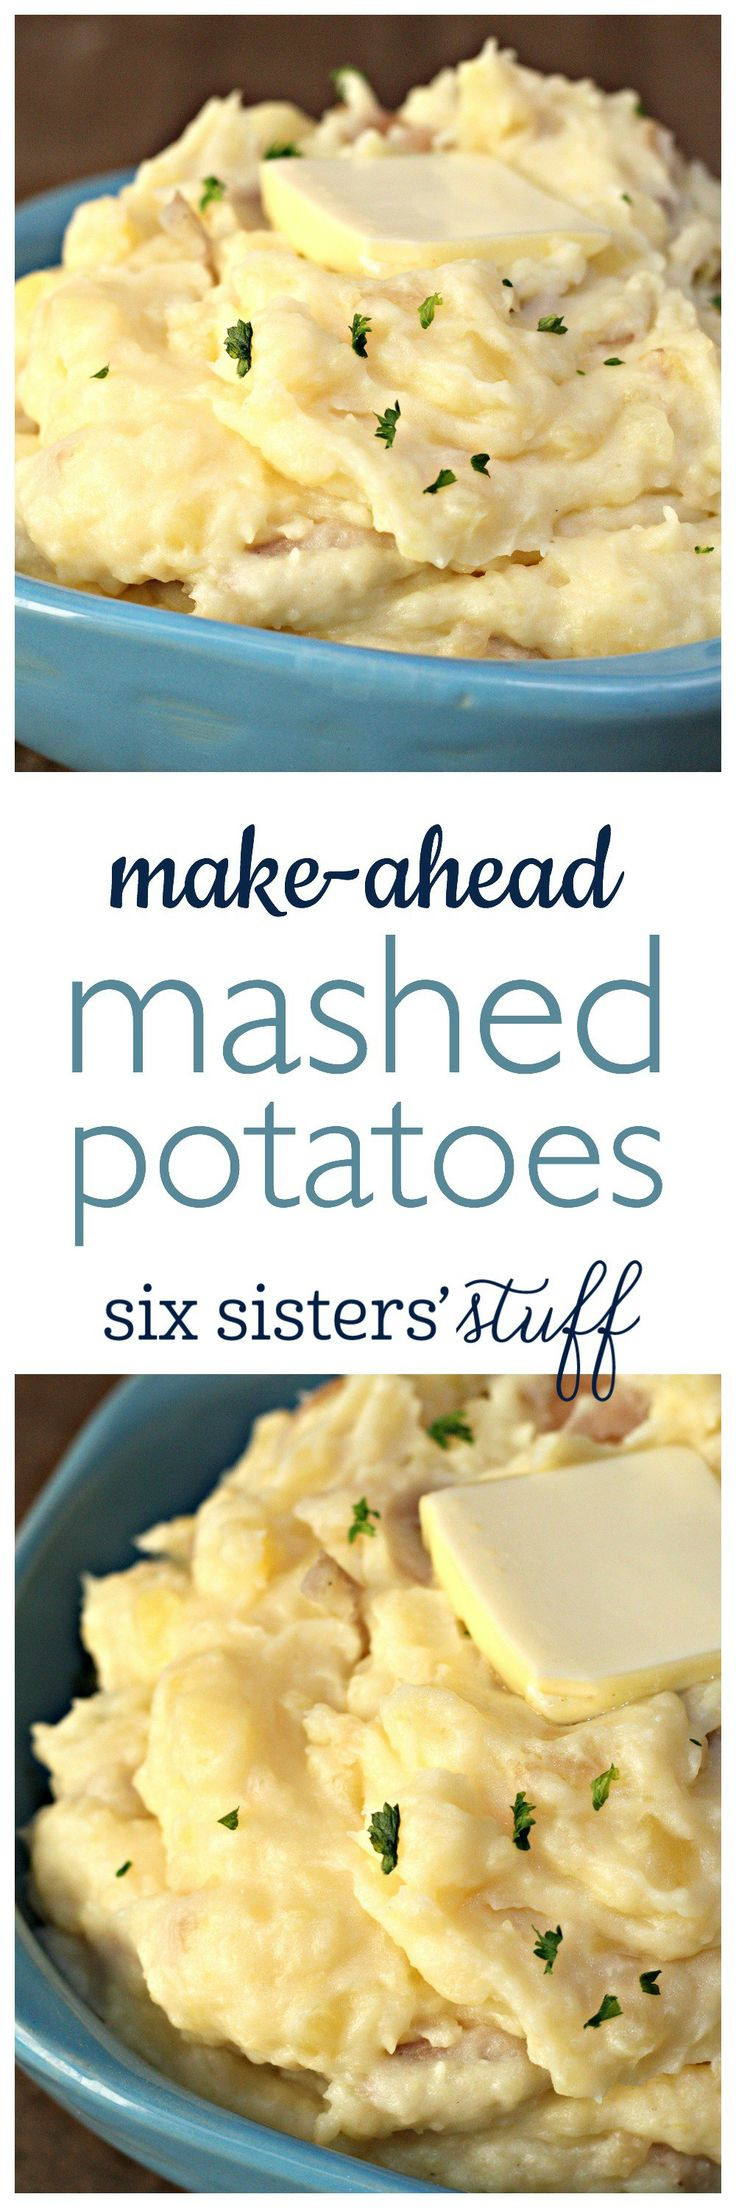 Make Ahead Mashed Potatoes For Thanksgiving  17 Best ideas about Make Ahead Mashed Potatoes on